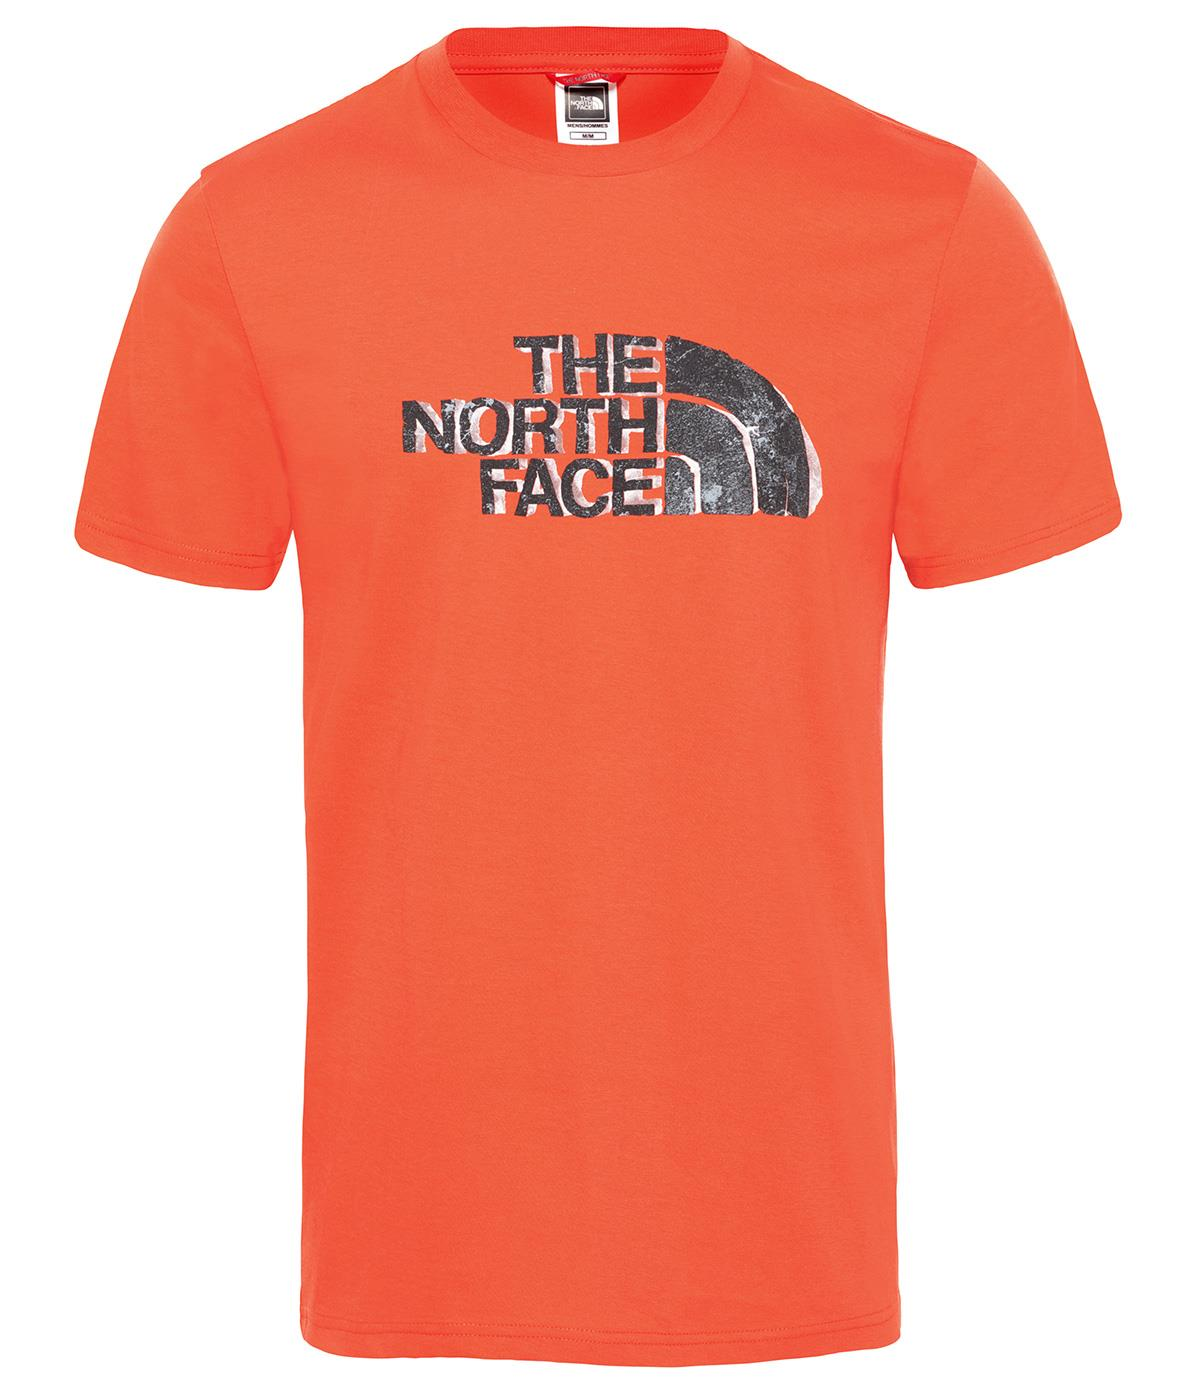 The Northface Erkek S/S Flash Tee - Eu T93Ofu15Q Tişört